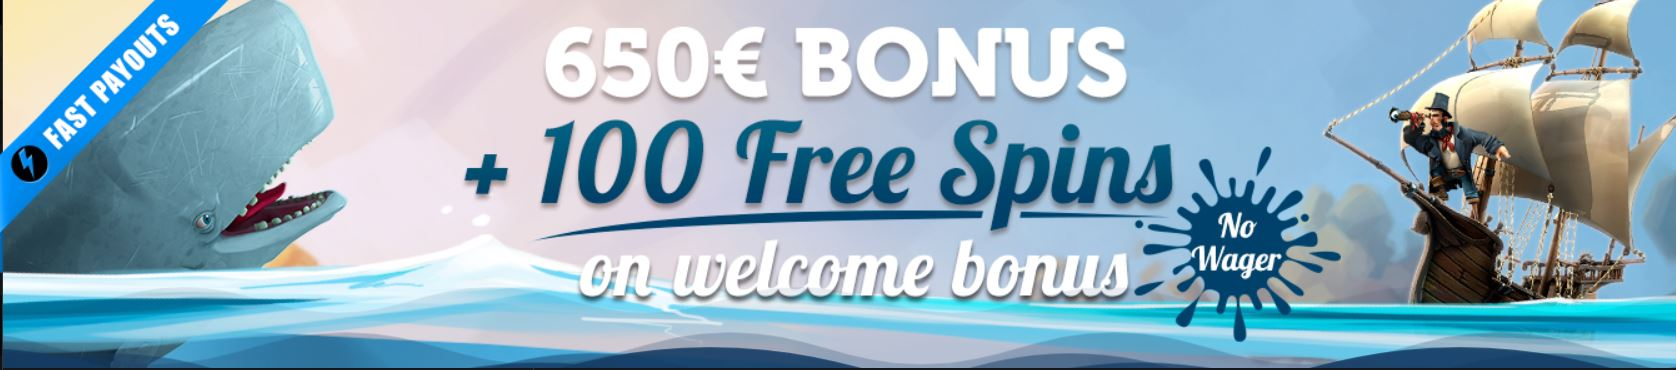 bonanza game welcome bonus